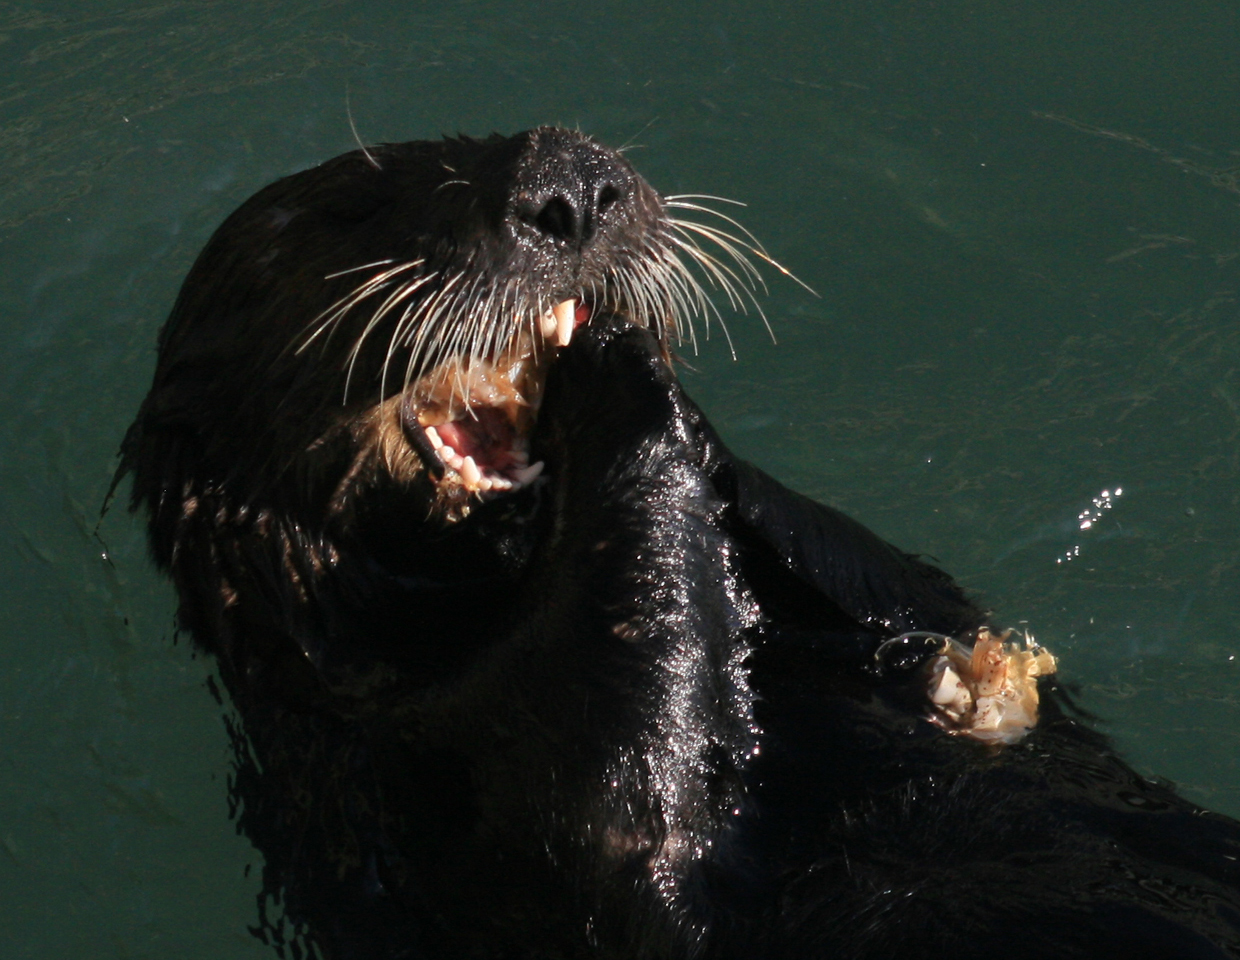 Sea Otter Eating A Mussel - Close Up With Teeth | Michael ... |Sea Otters Eating Bears